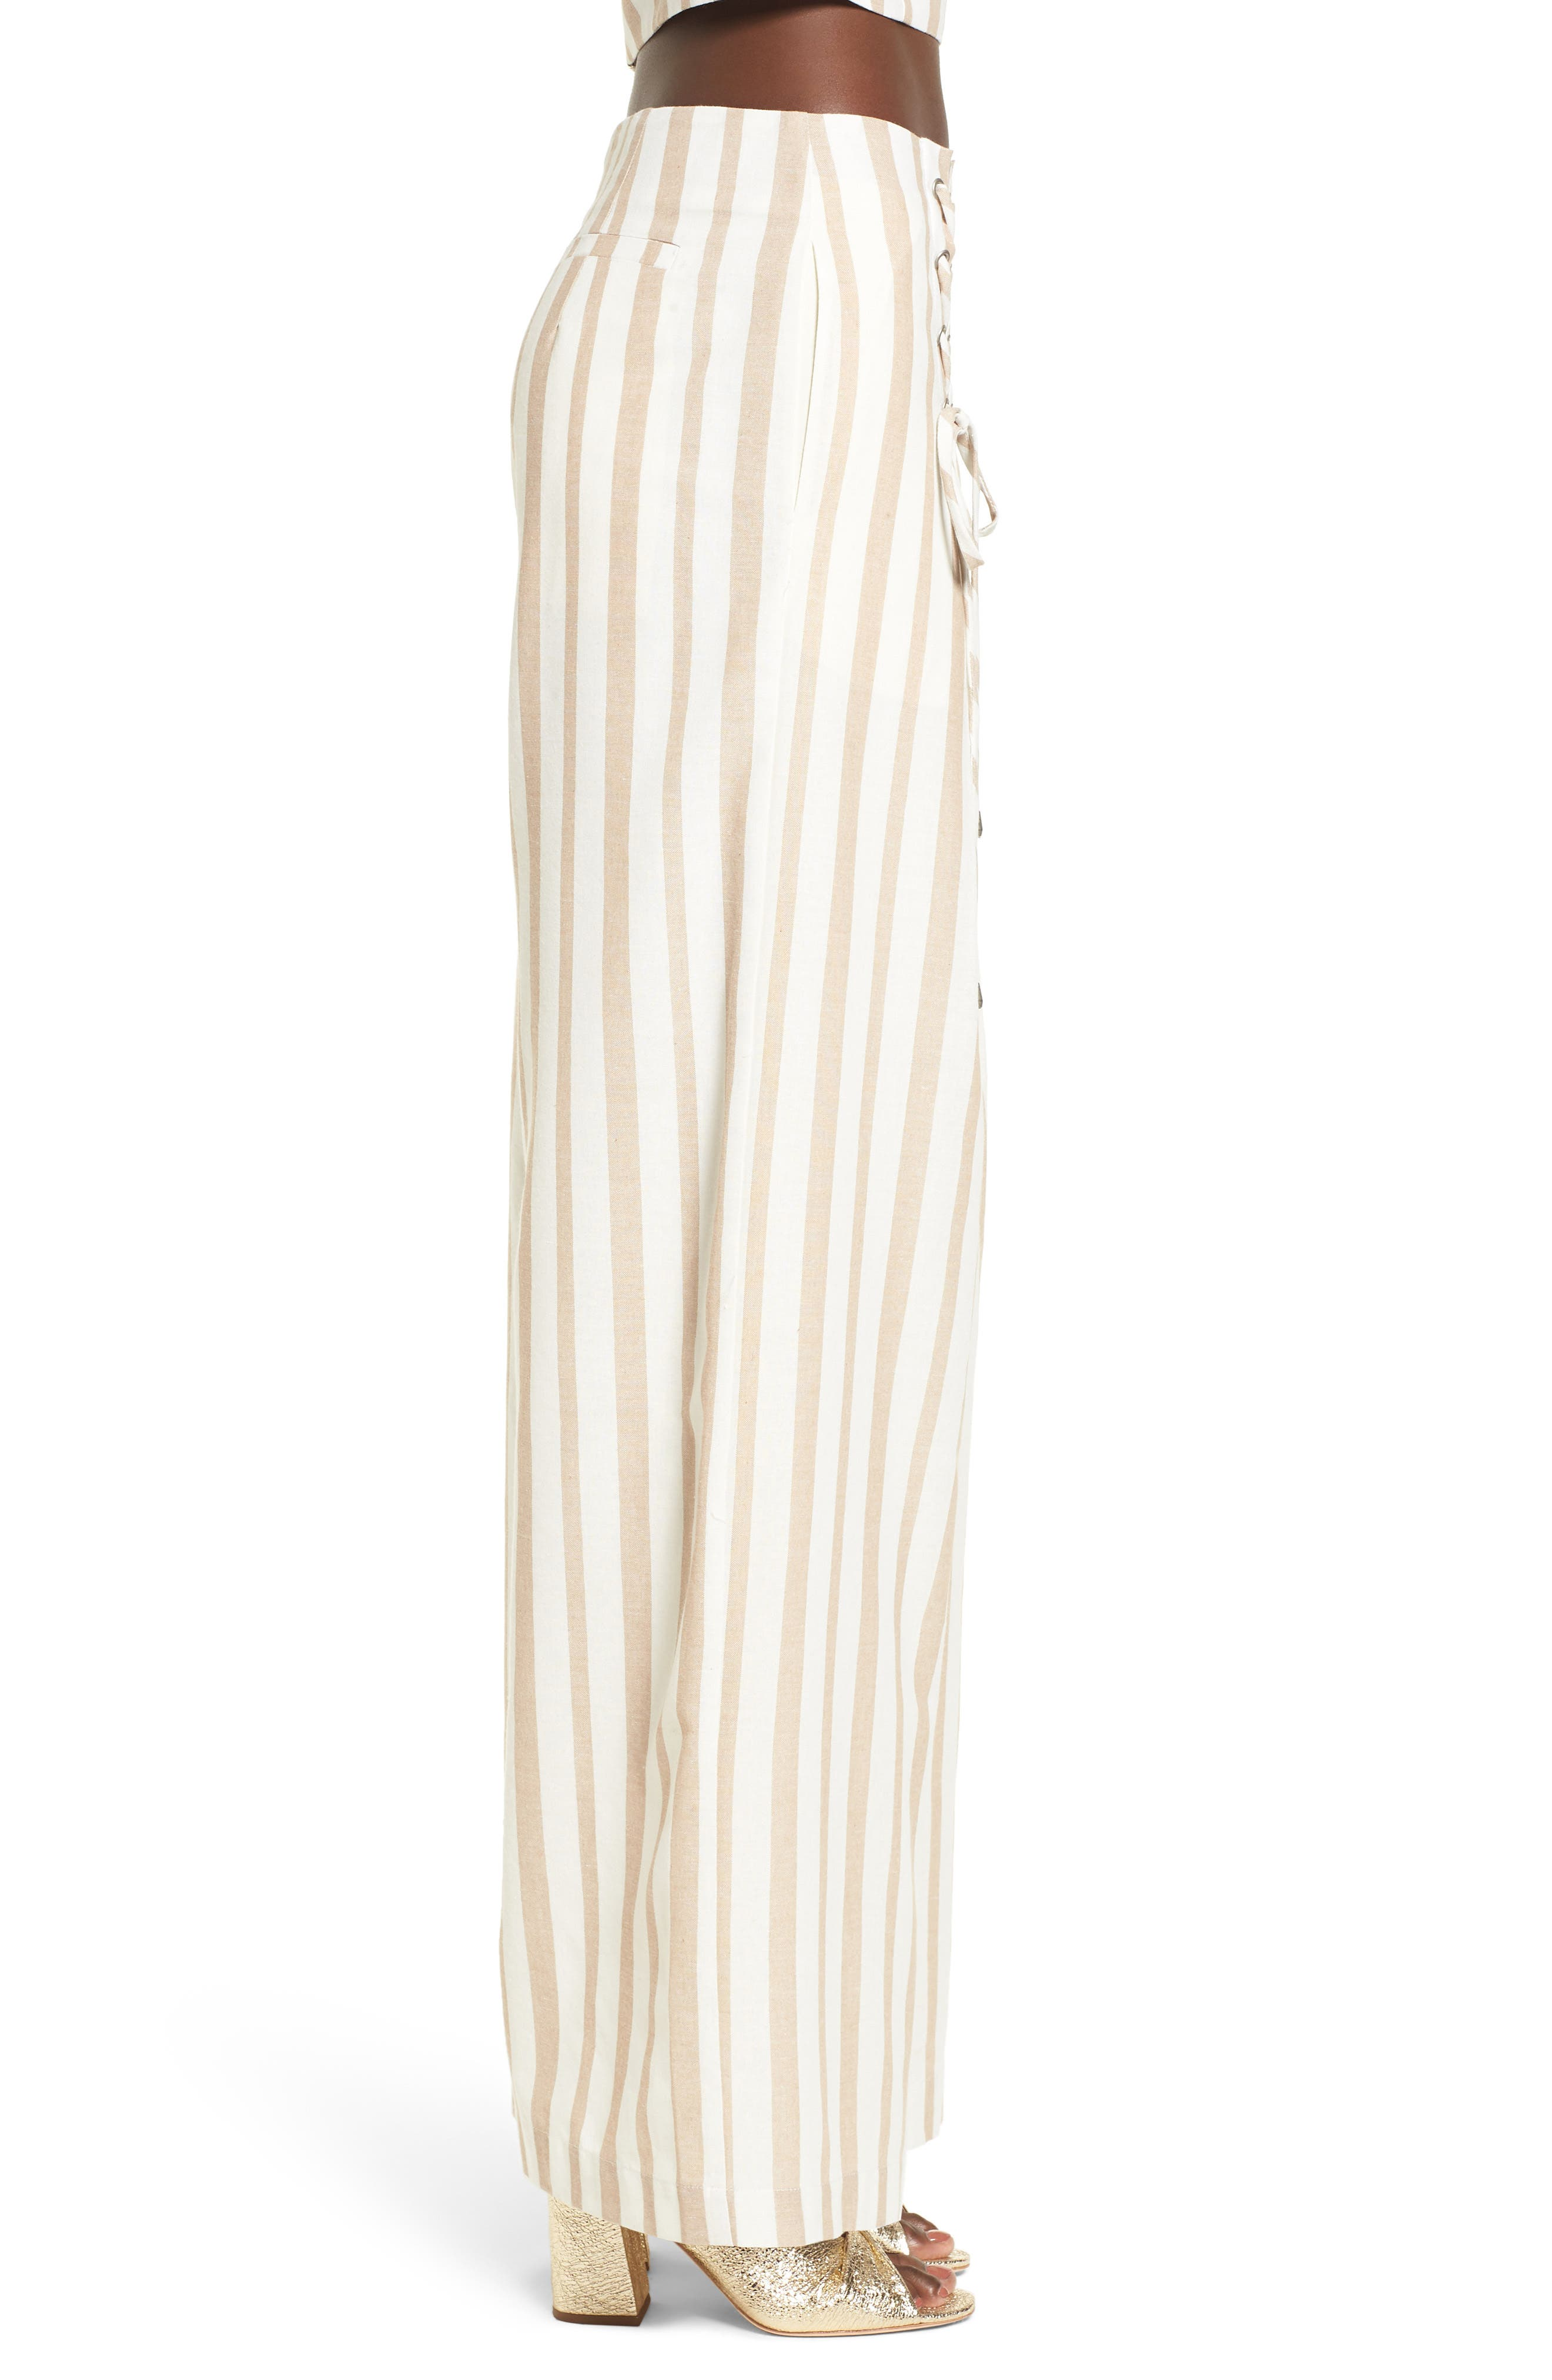 Chriselle x J.O.A. Lace-Up High Waist Wide Leg Pants,                             Alternate thumbnail 3, color,                             250